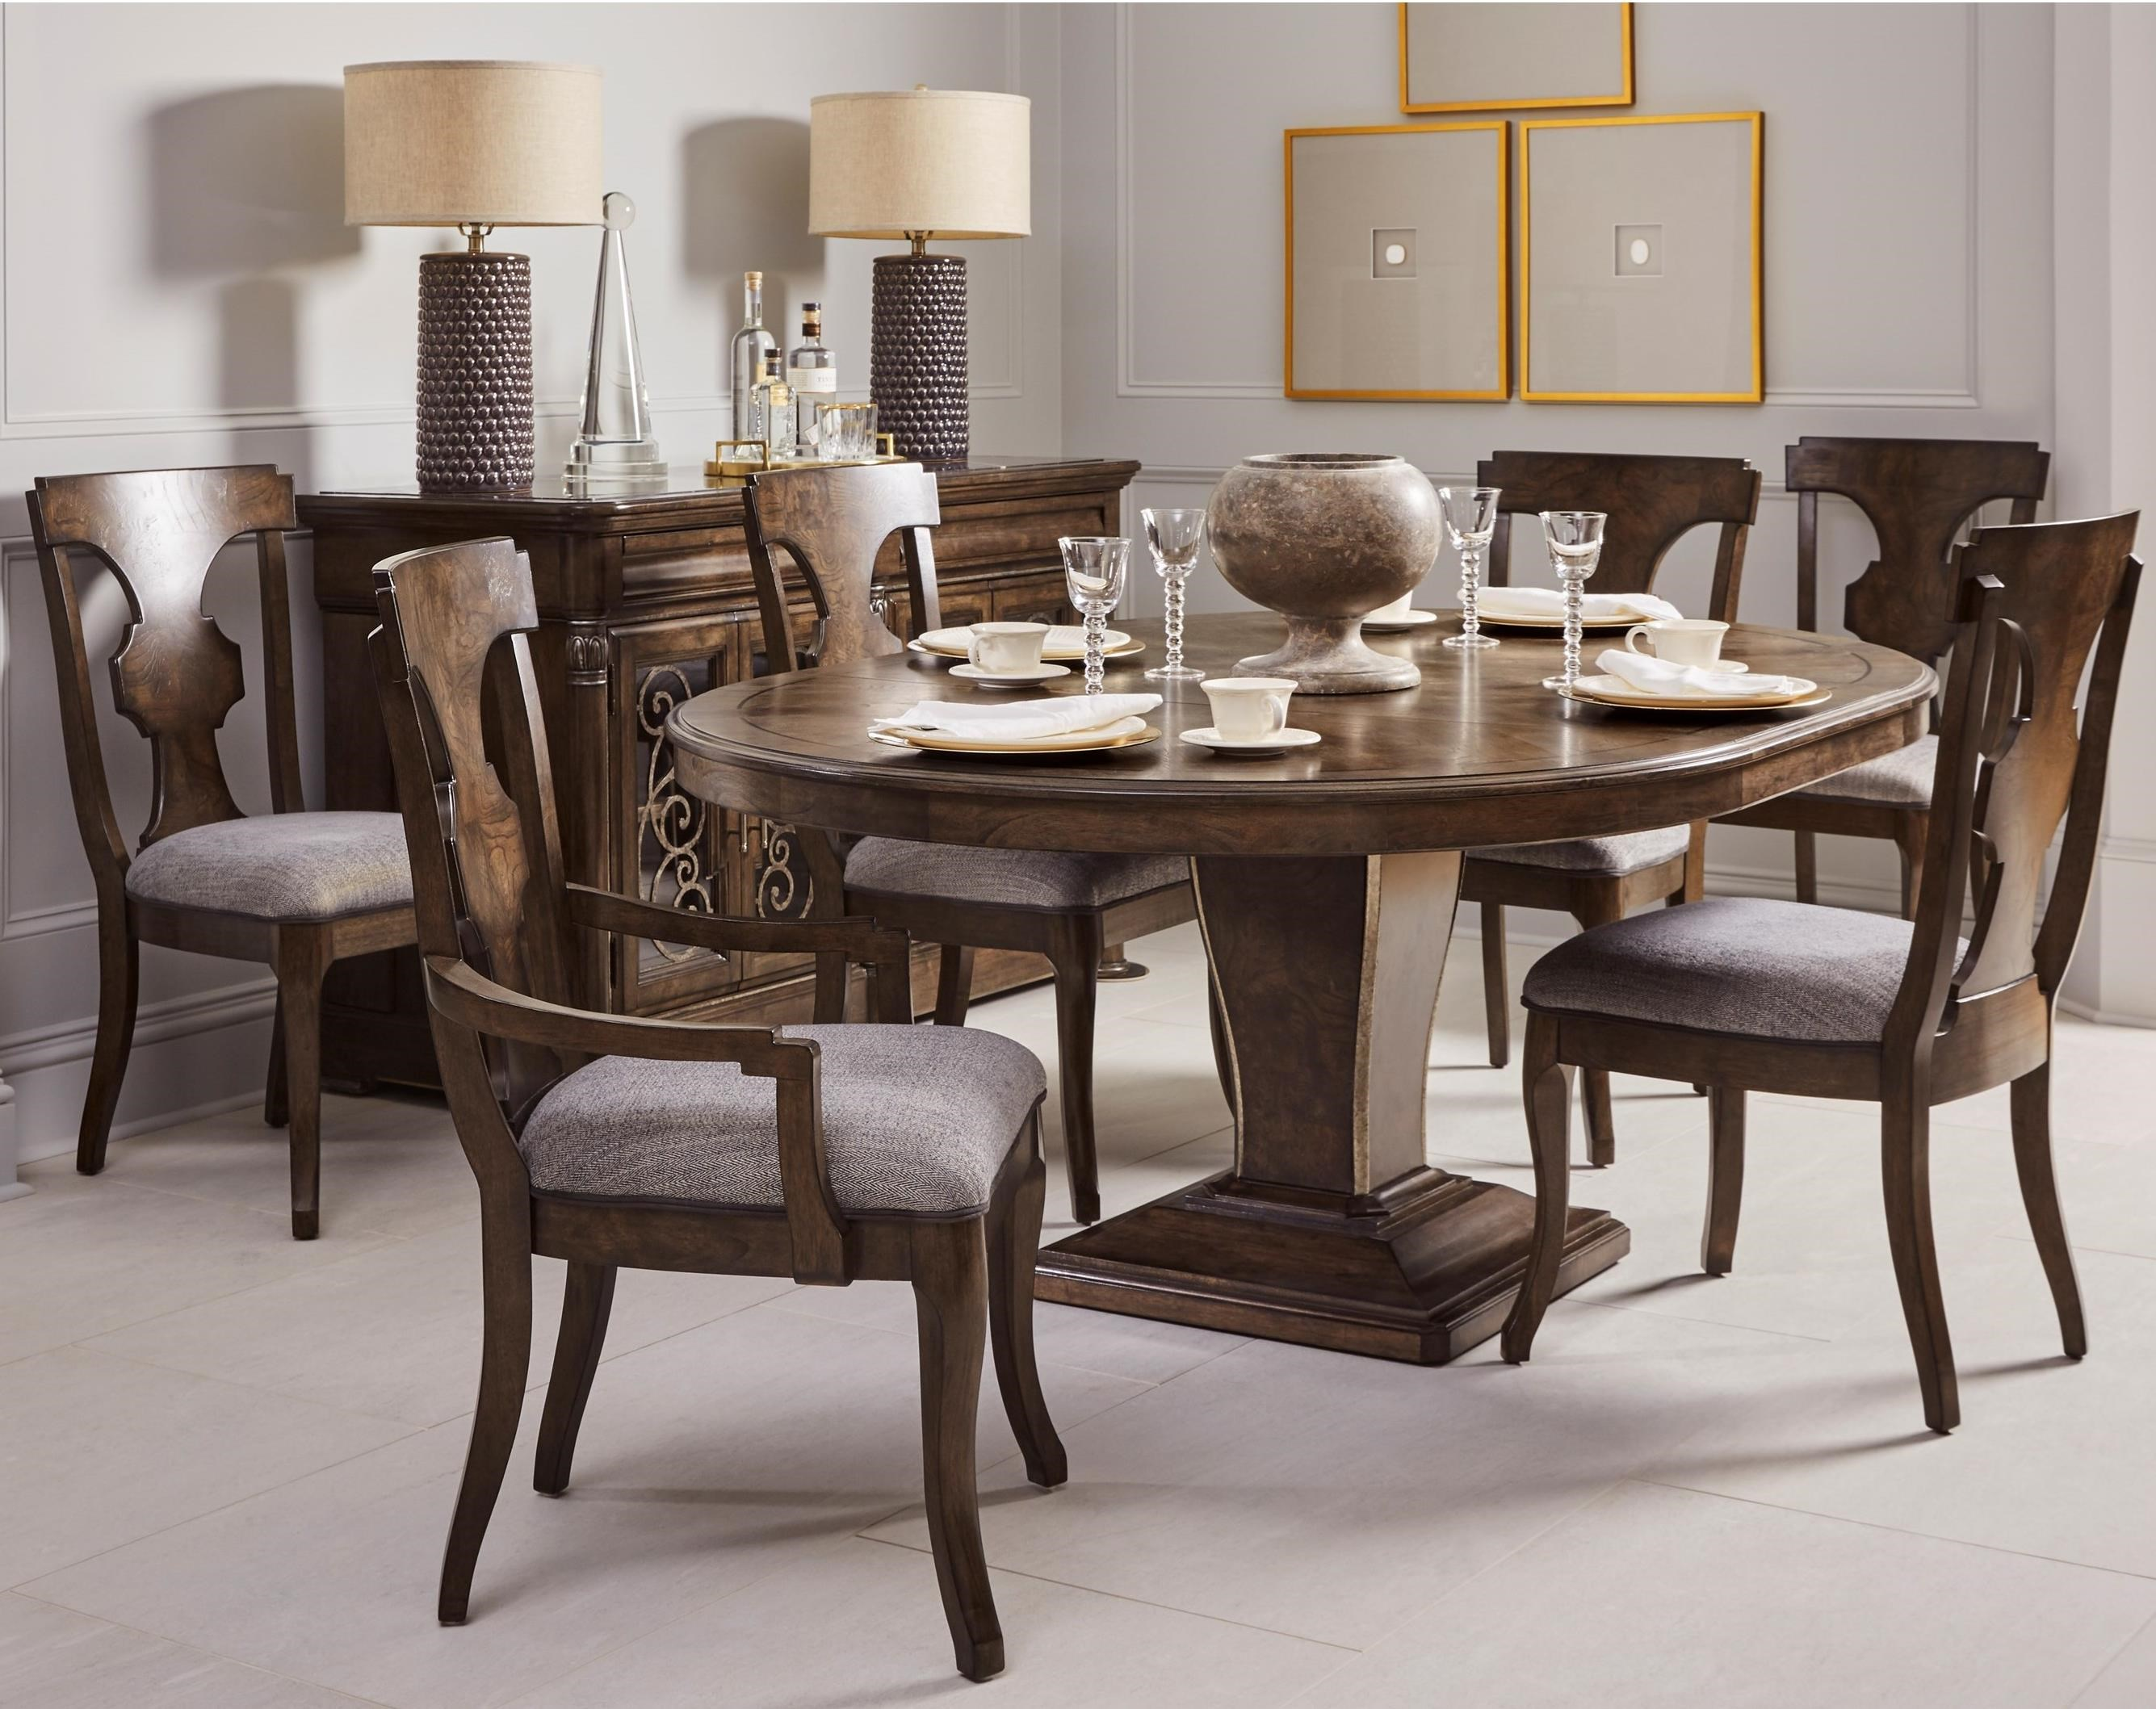 Landmark 7-Piece Oval Table and Chair Set by Klien Furniture at Sprintz Furniture